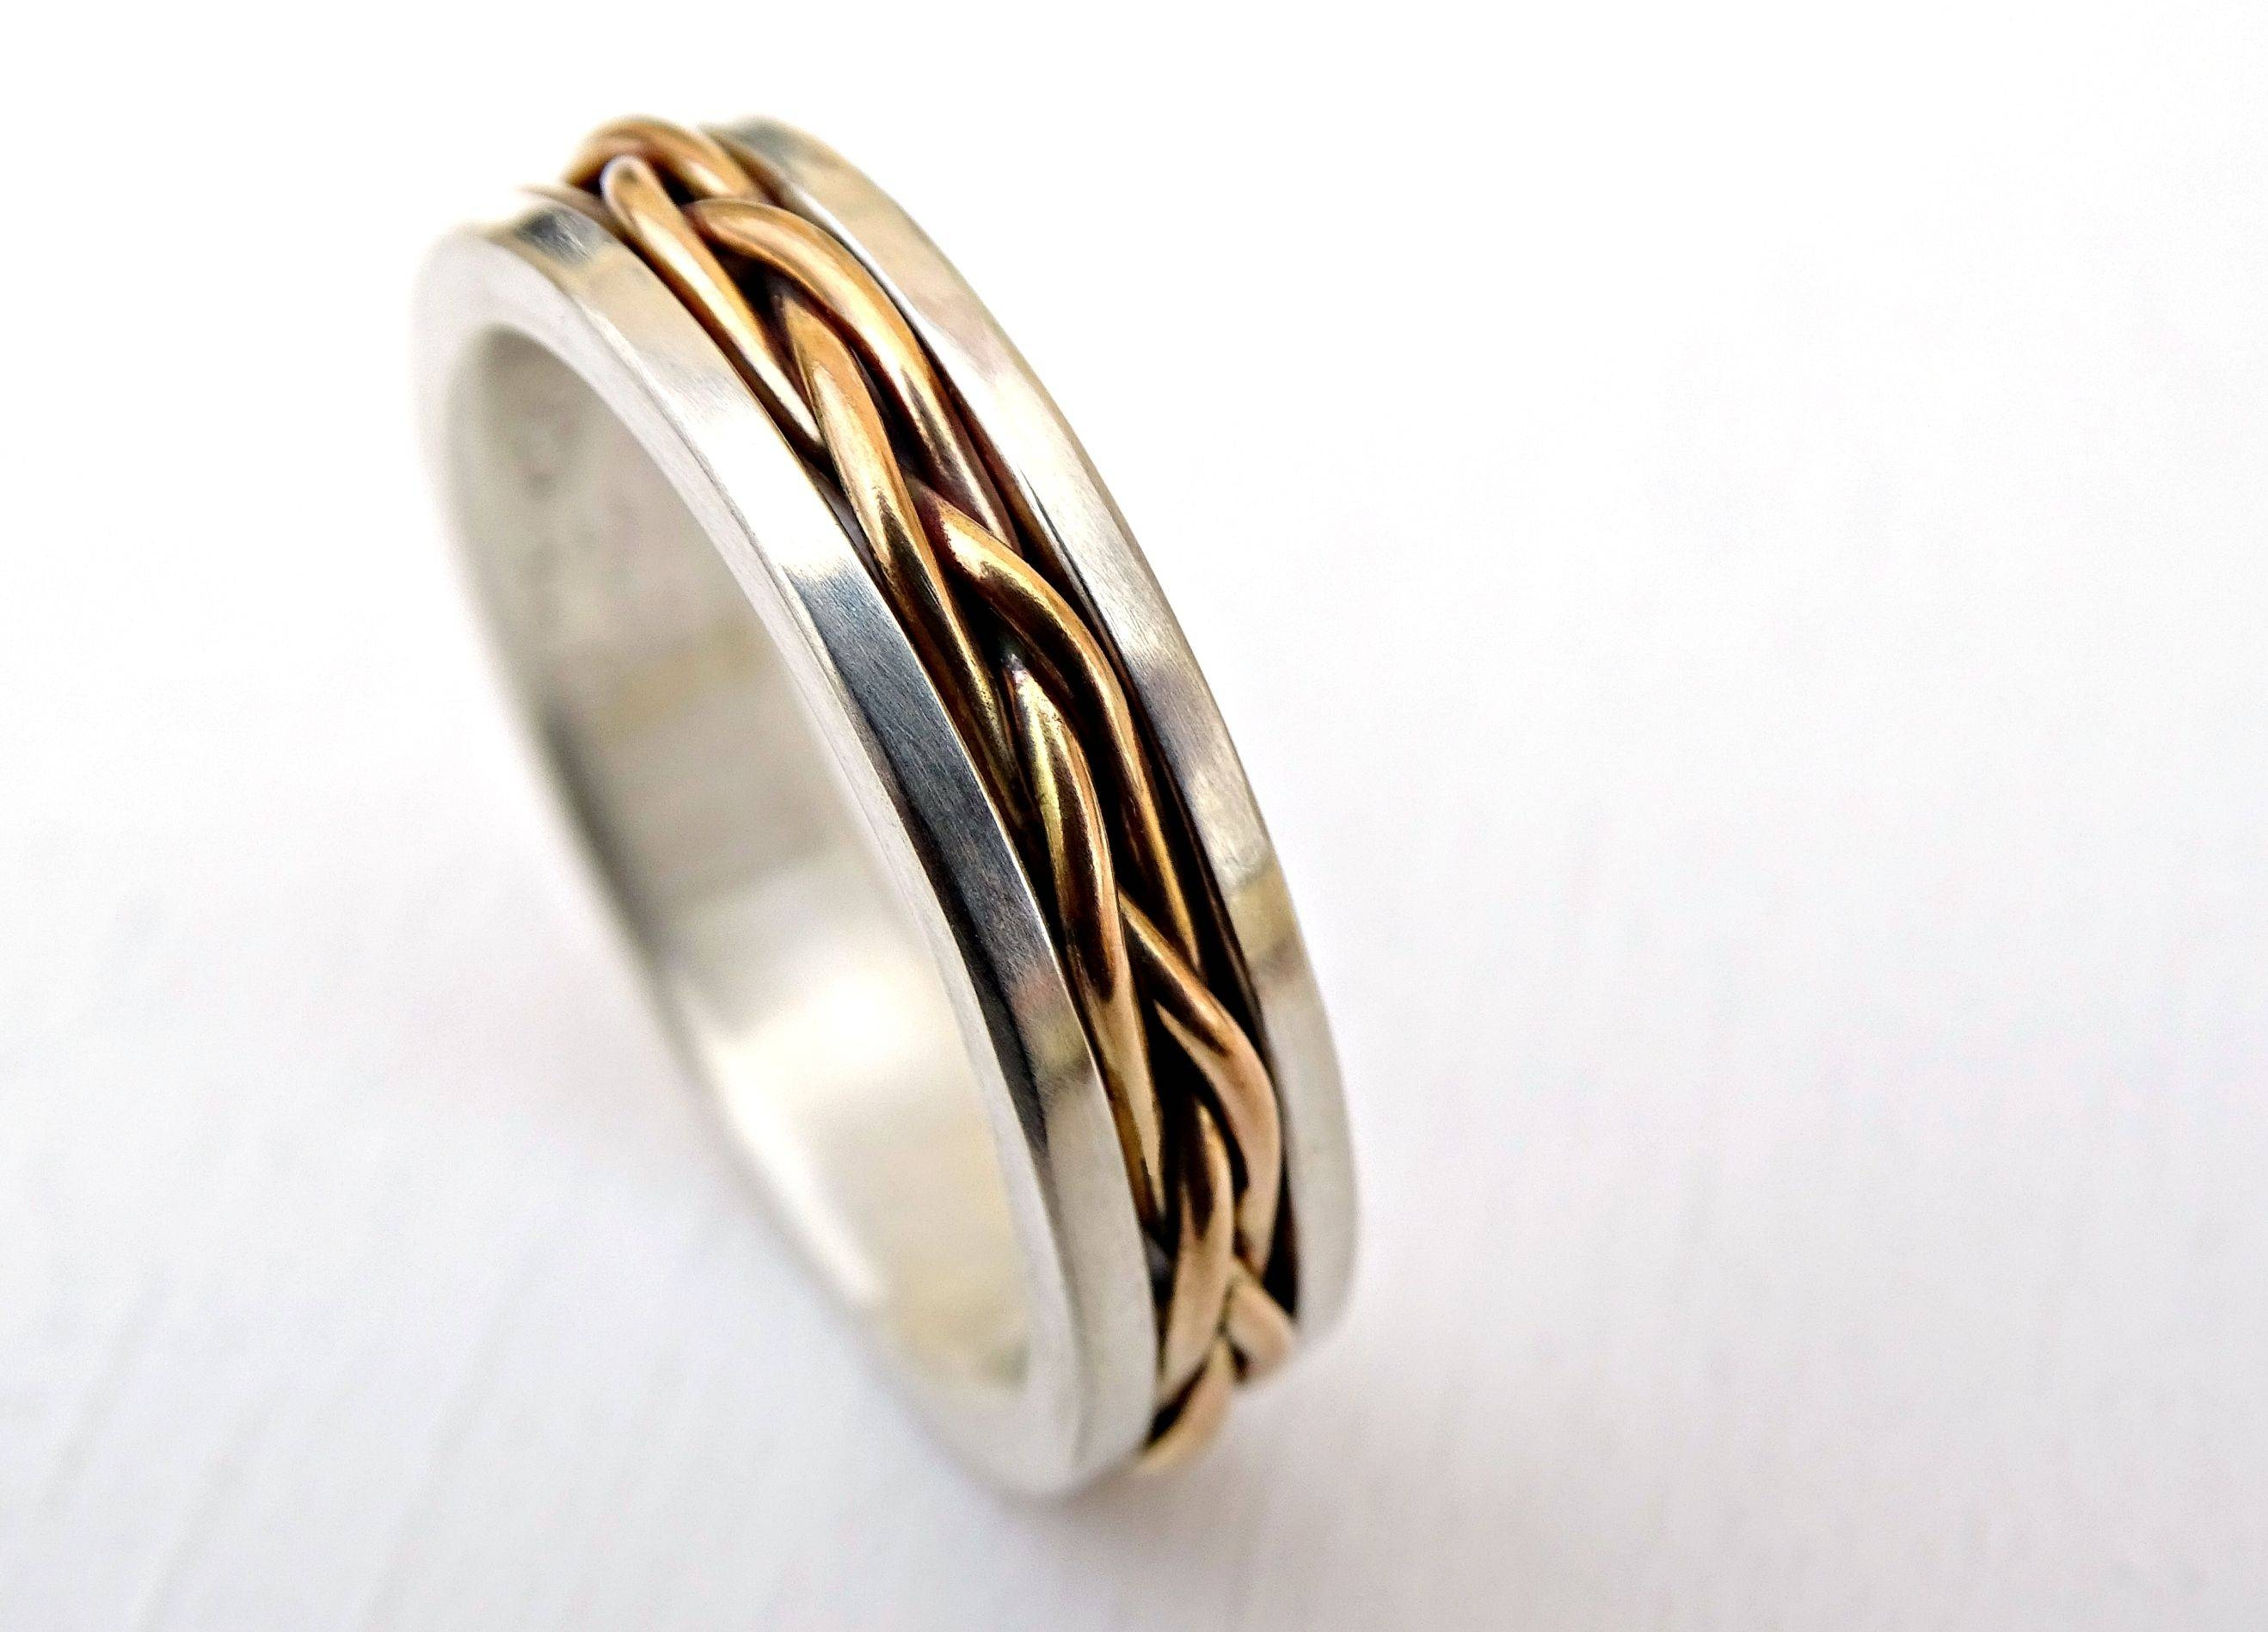 Buy A Custom Made Viking Wedding Band, Mens Promise Ring Or Unique Within Viking Wedding Bands (View 5 of 15)